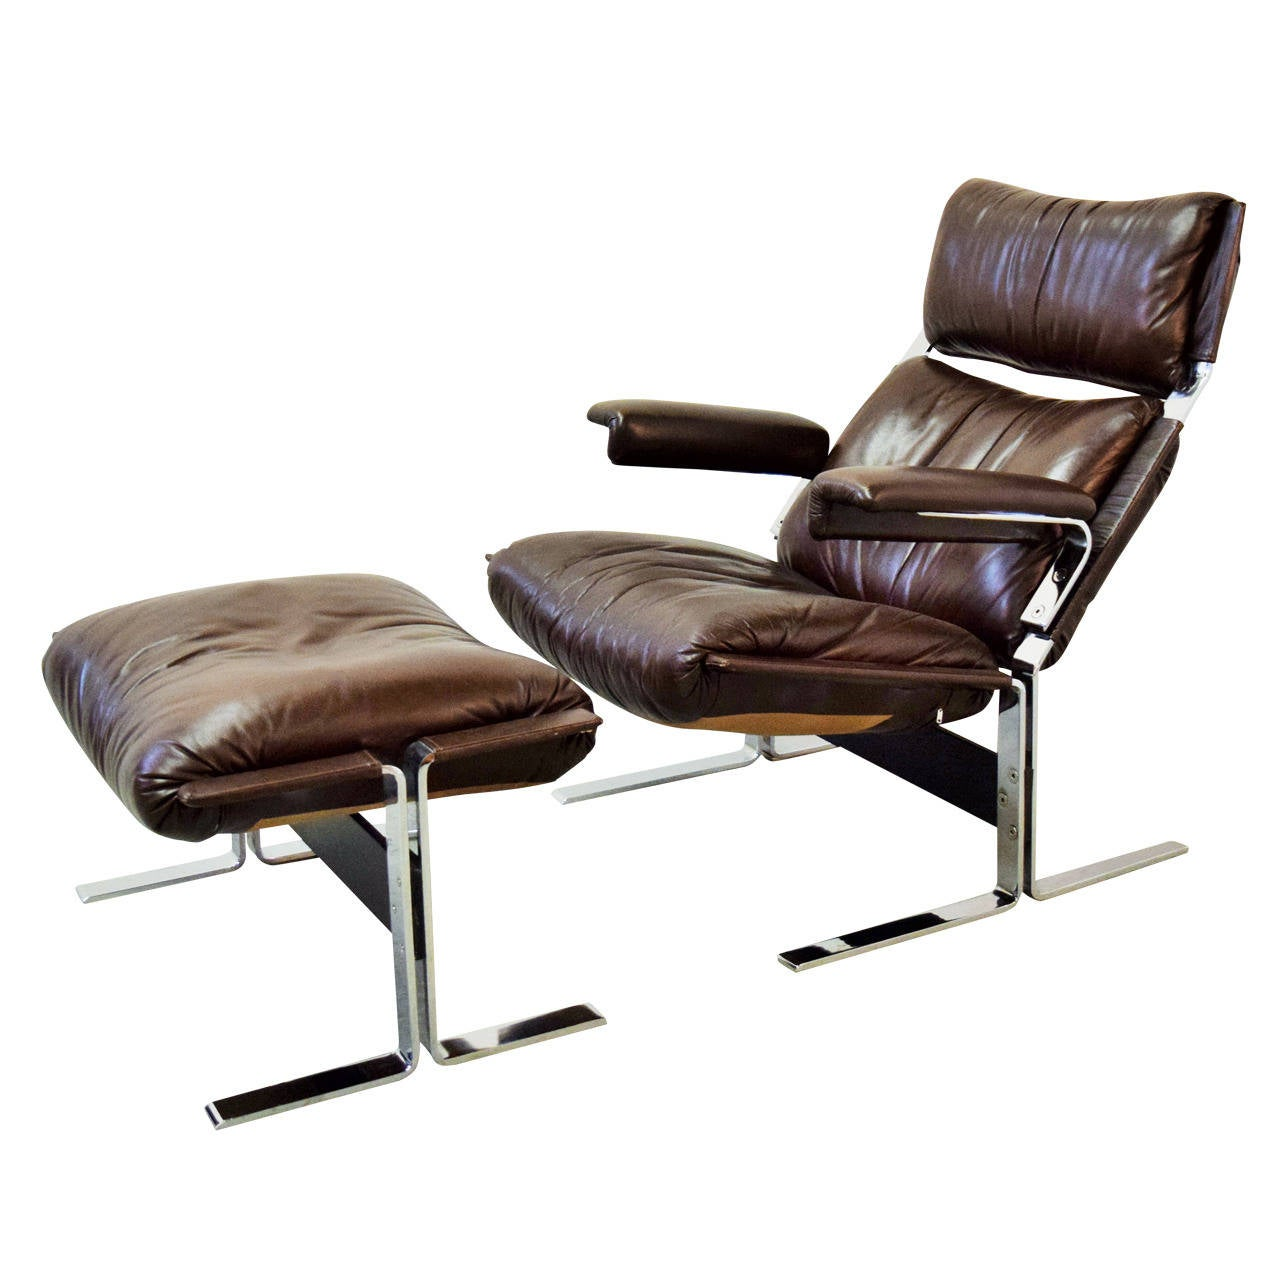 Leather Lounge Chair And Ottoman By Kipp Stewart At 1stdibs